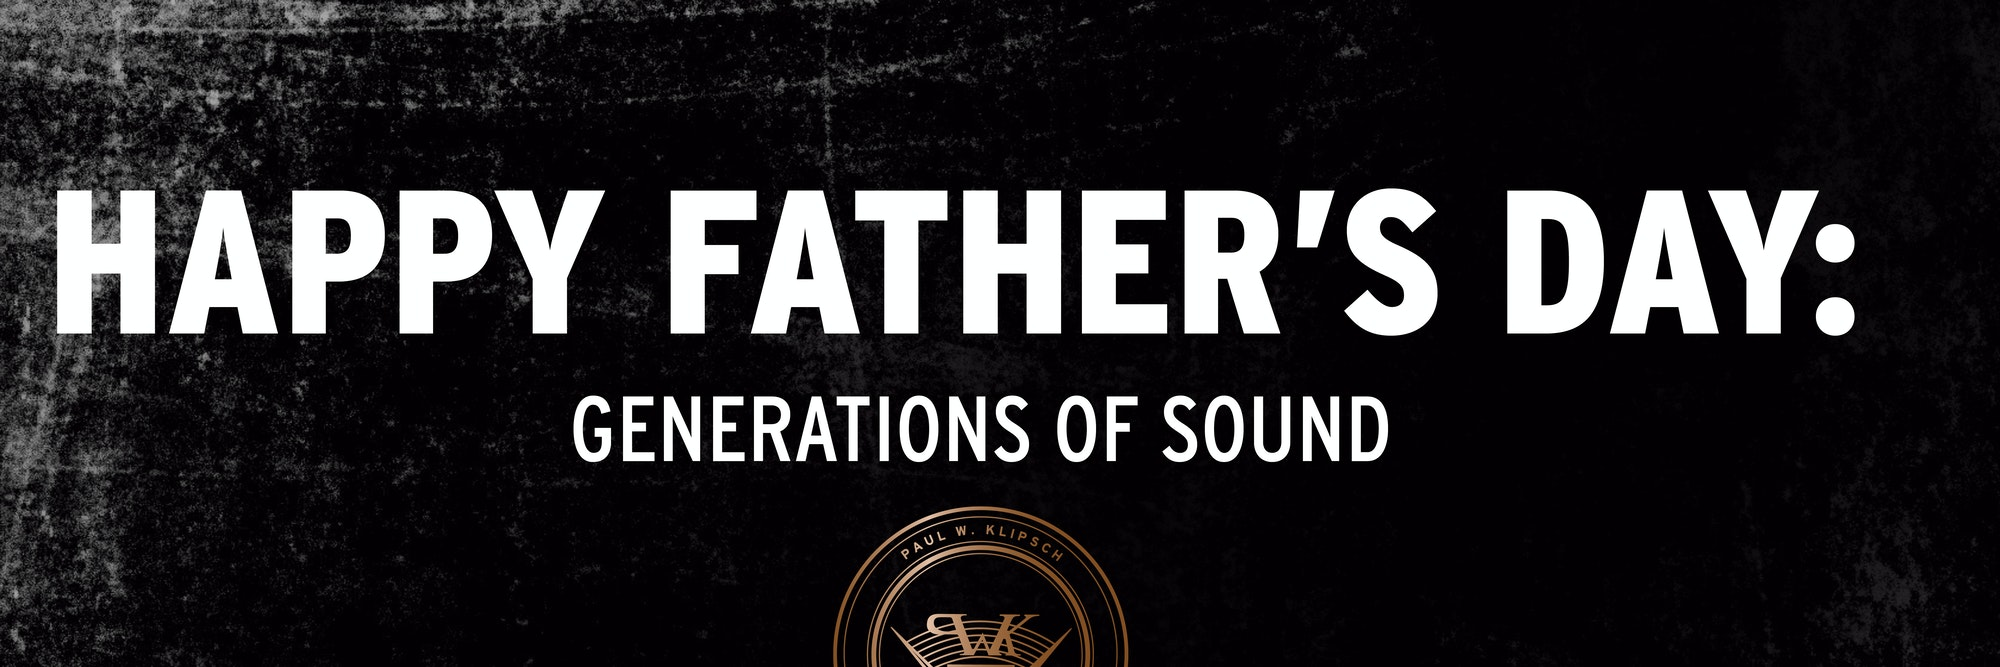 Happy Father's Day: Generations of Sound